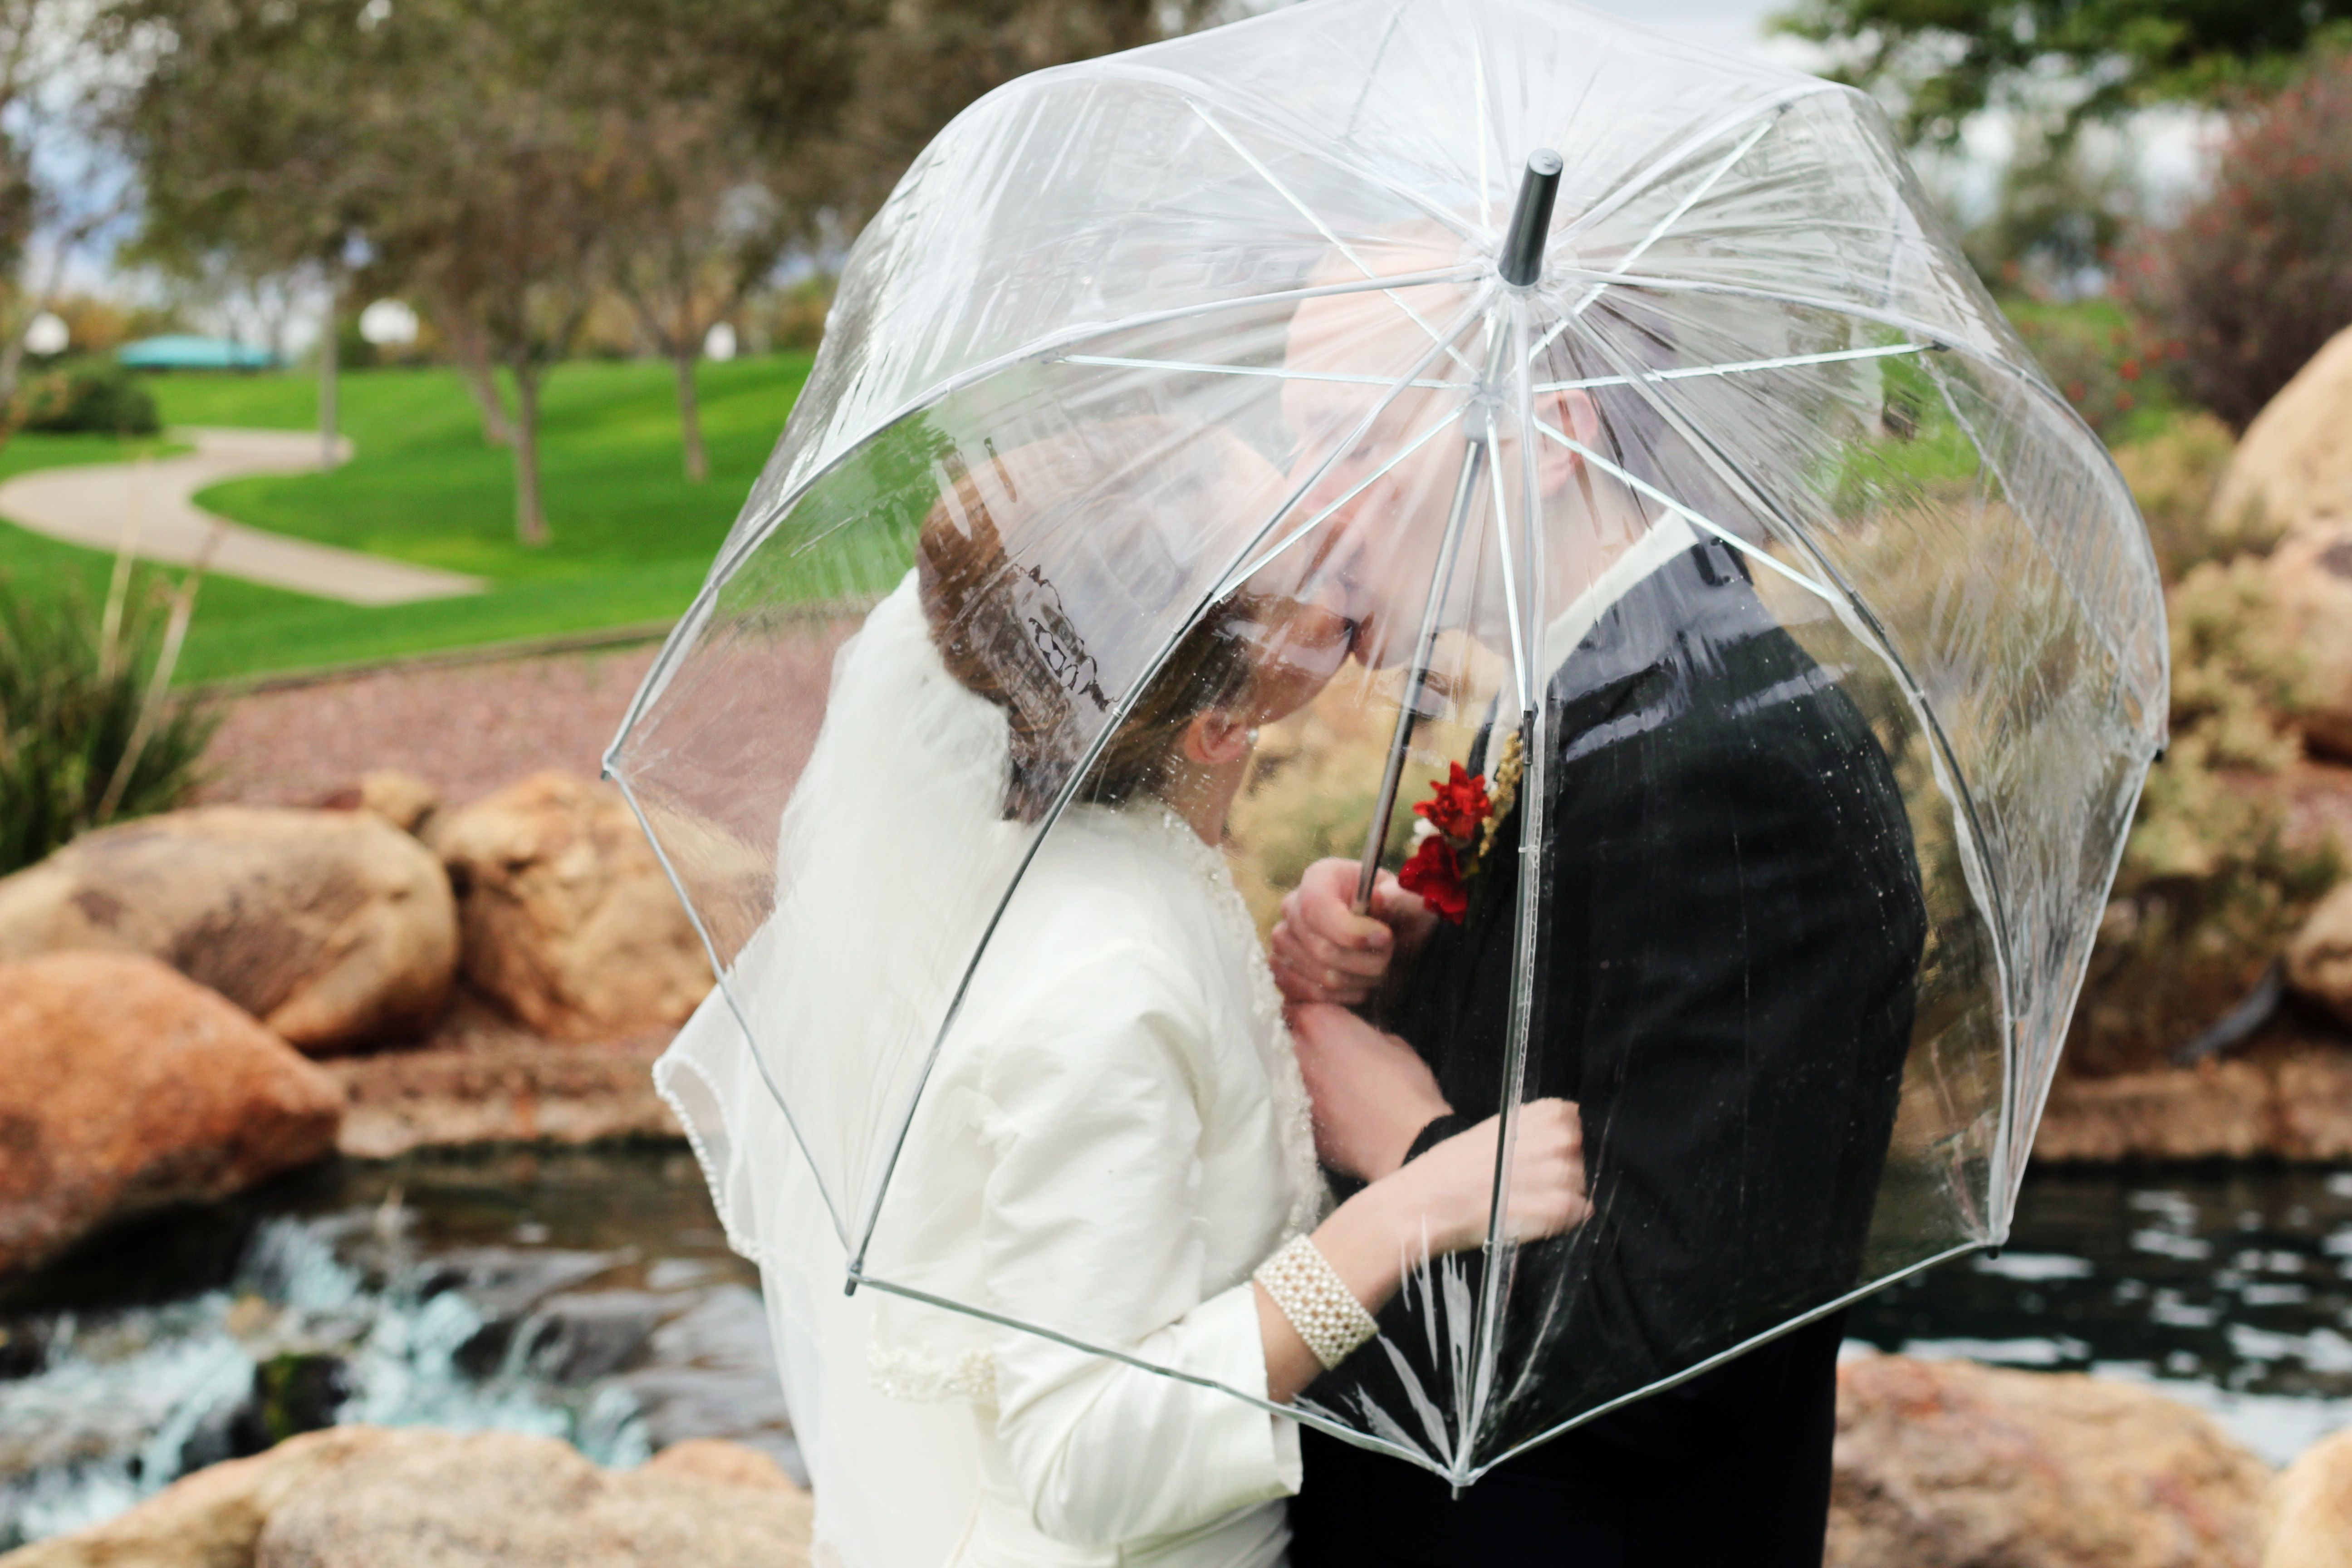 Fact Rain On Your Wedding Day Is Actually Considered Good Luck According To Hindu